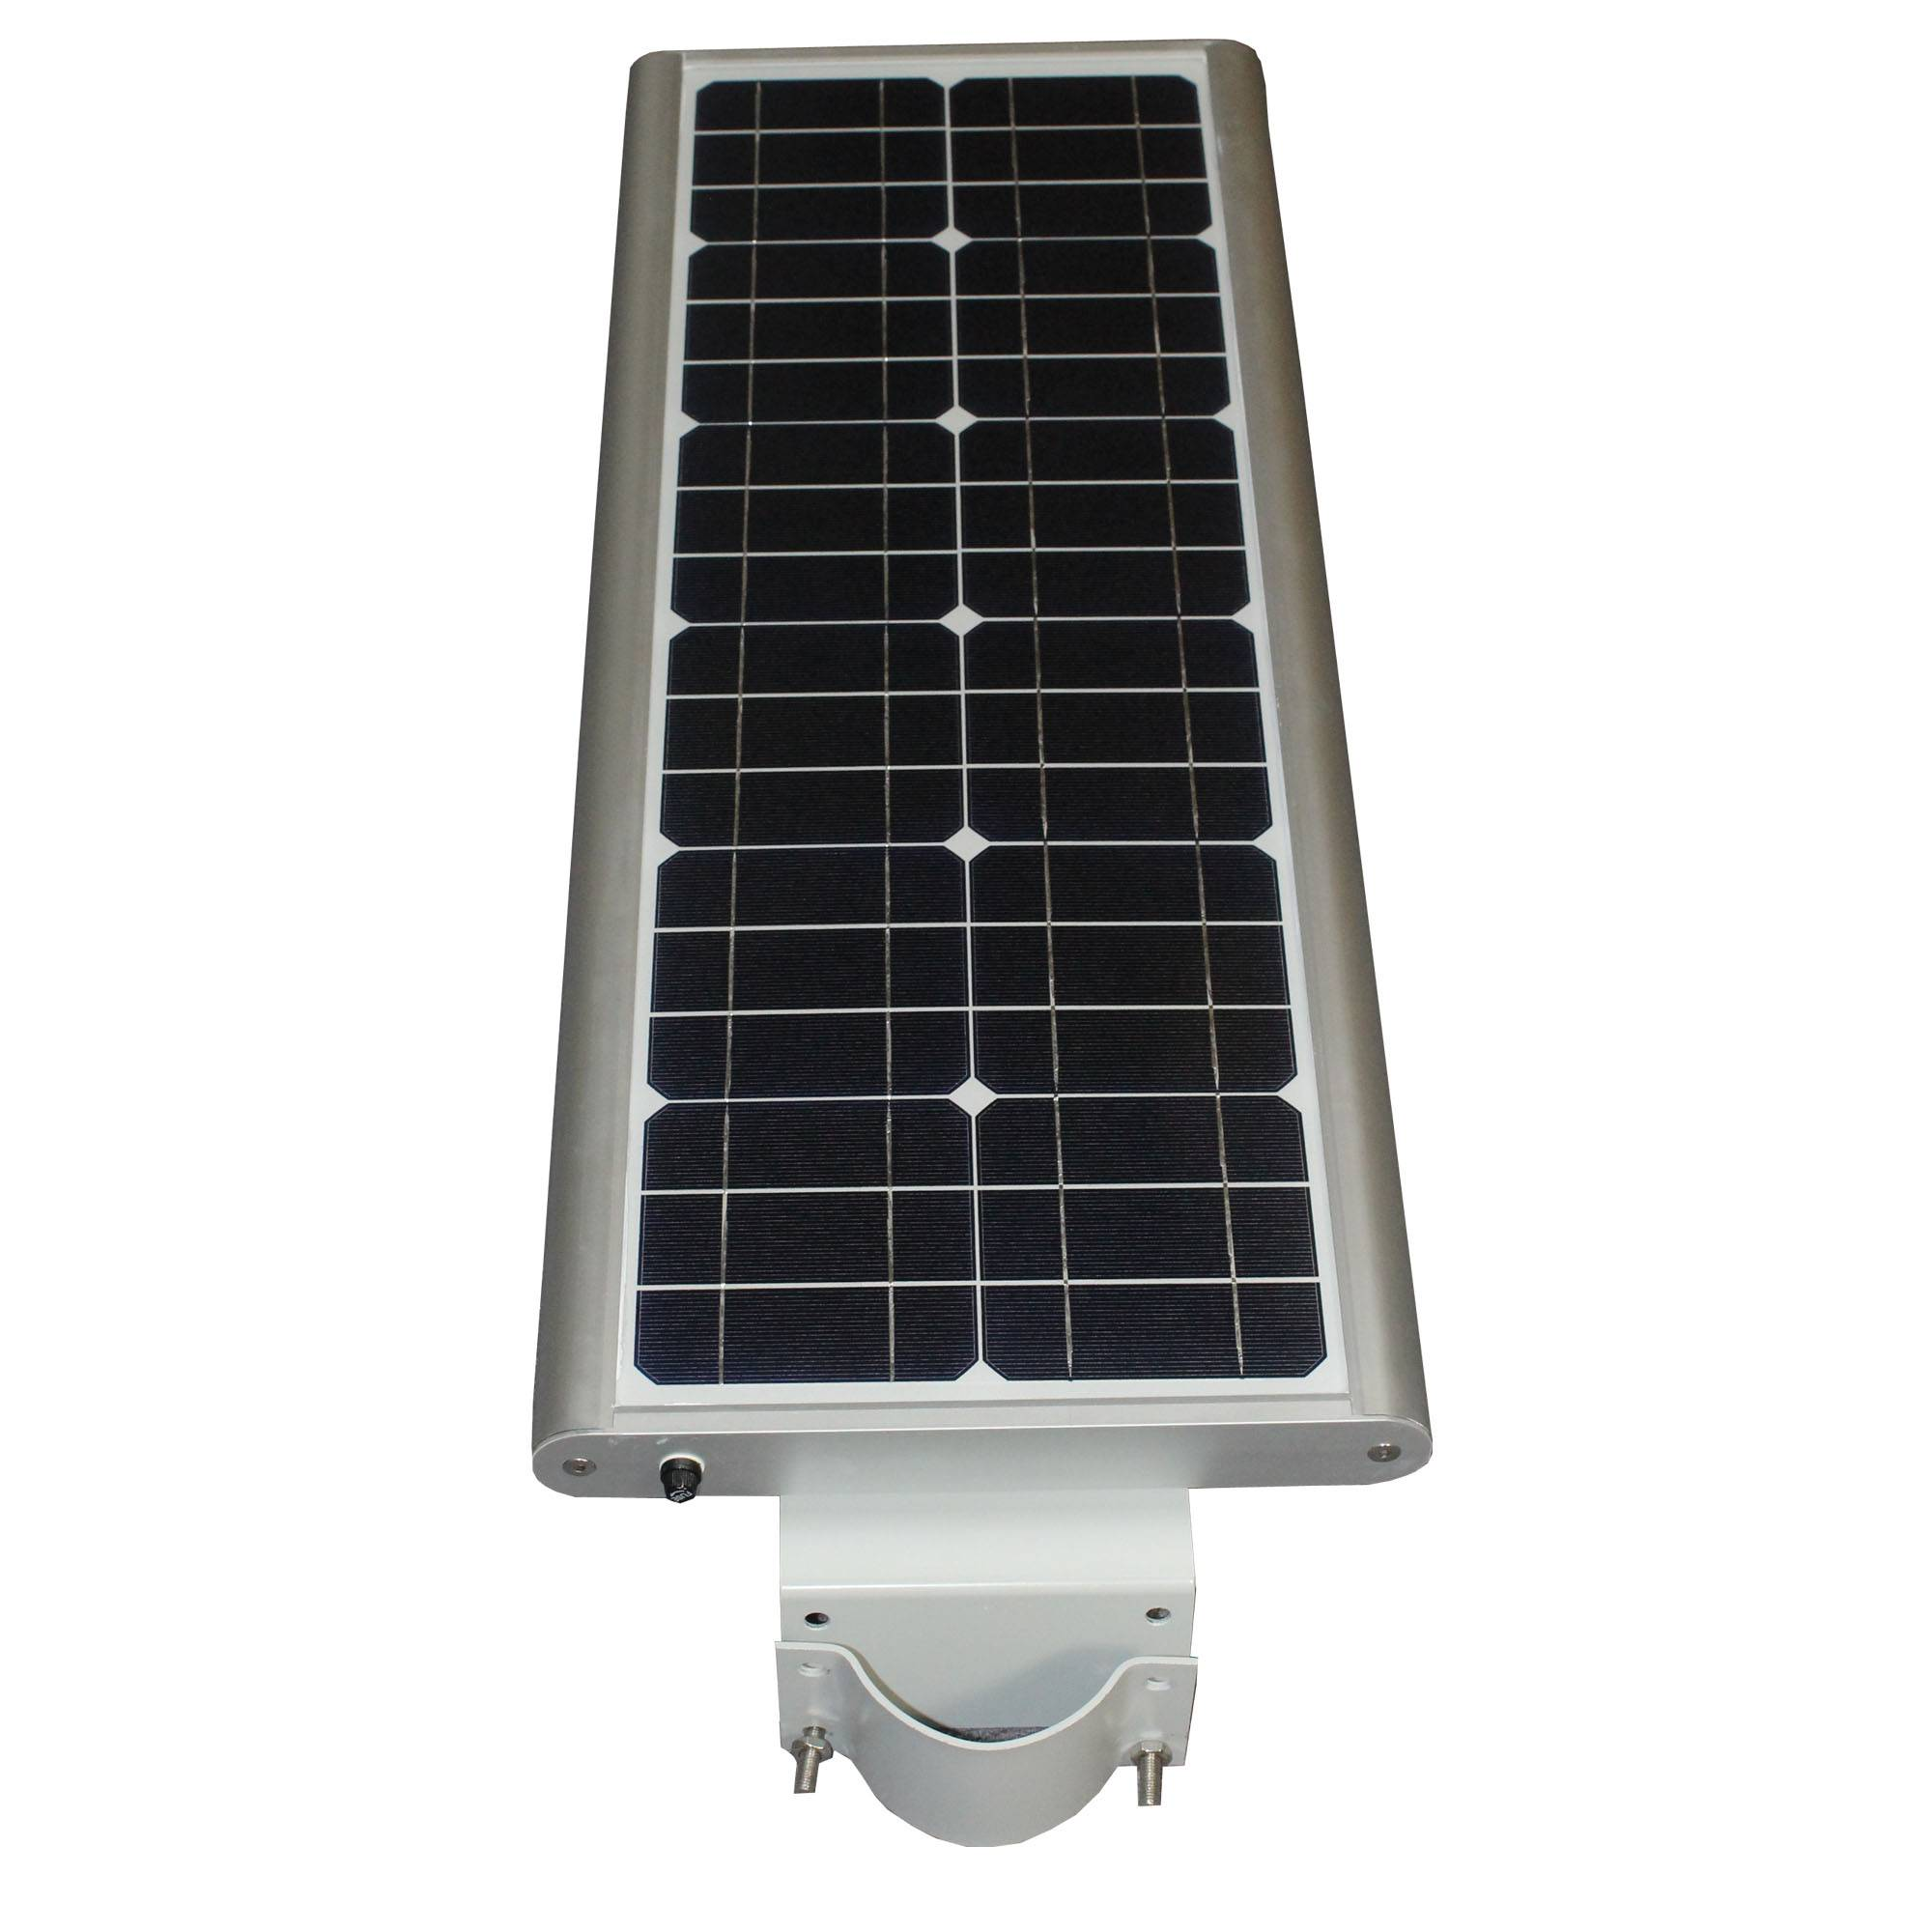 All in one solar street light with 20W LED lamp